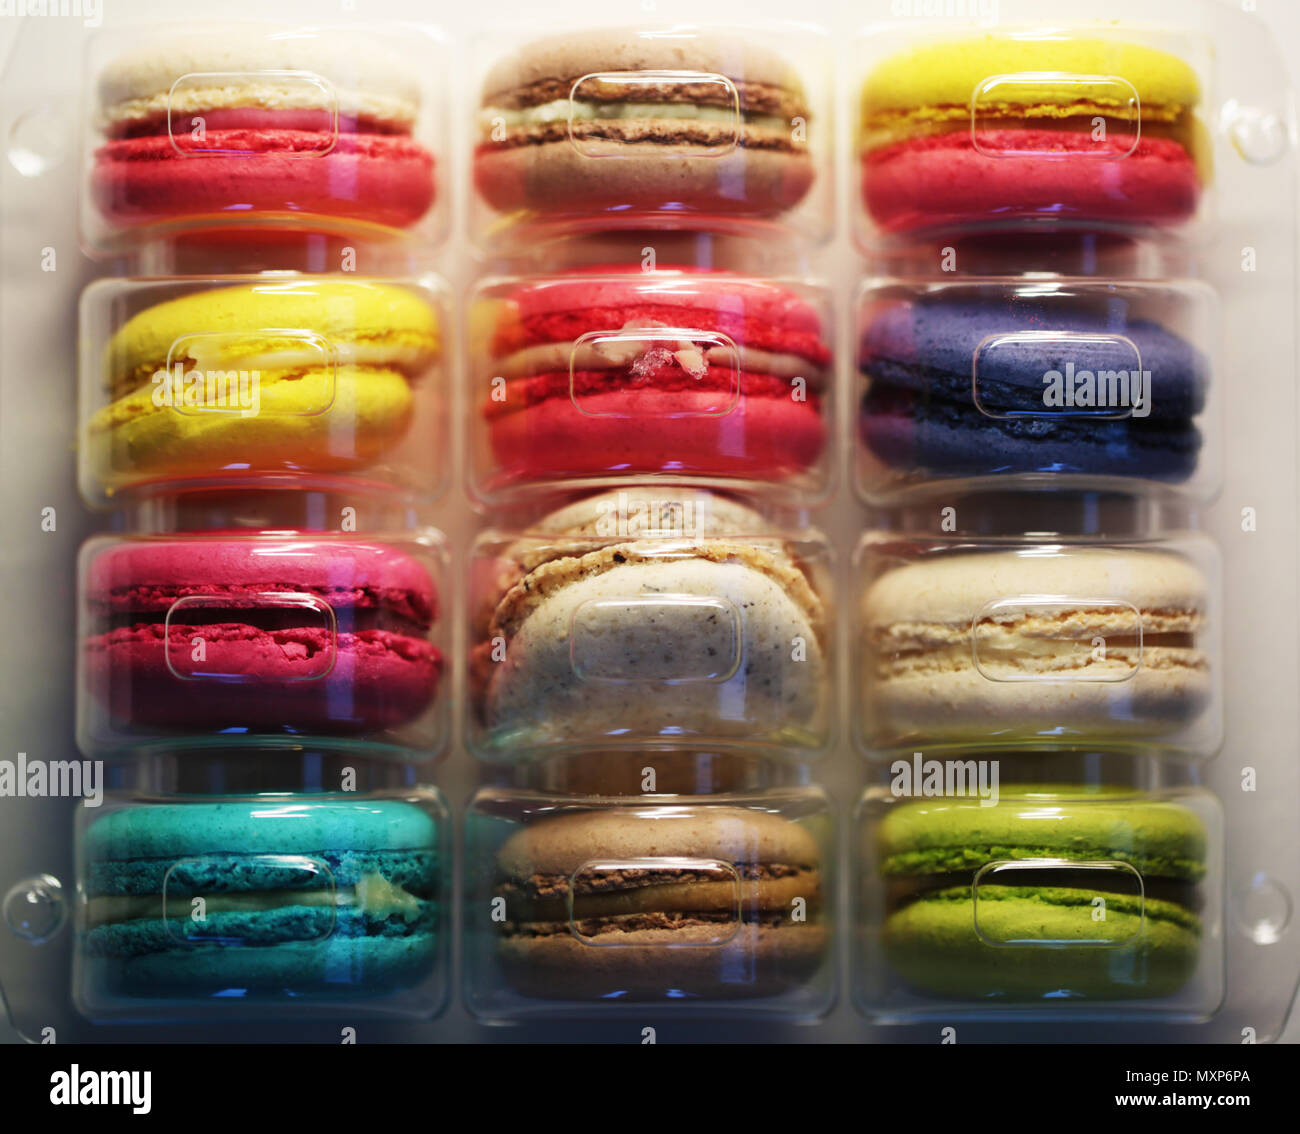 Macaroons of different colors packed in plastic bag - Stock Image